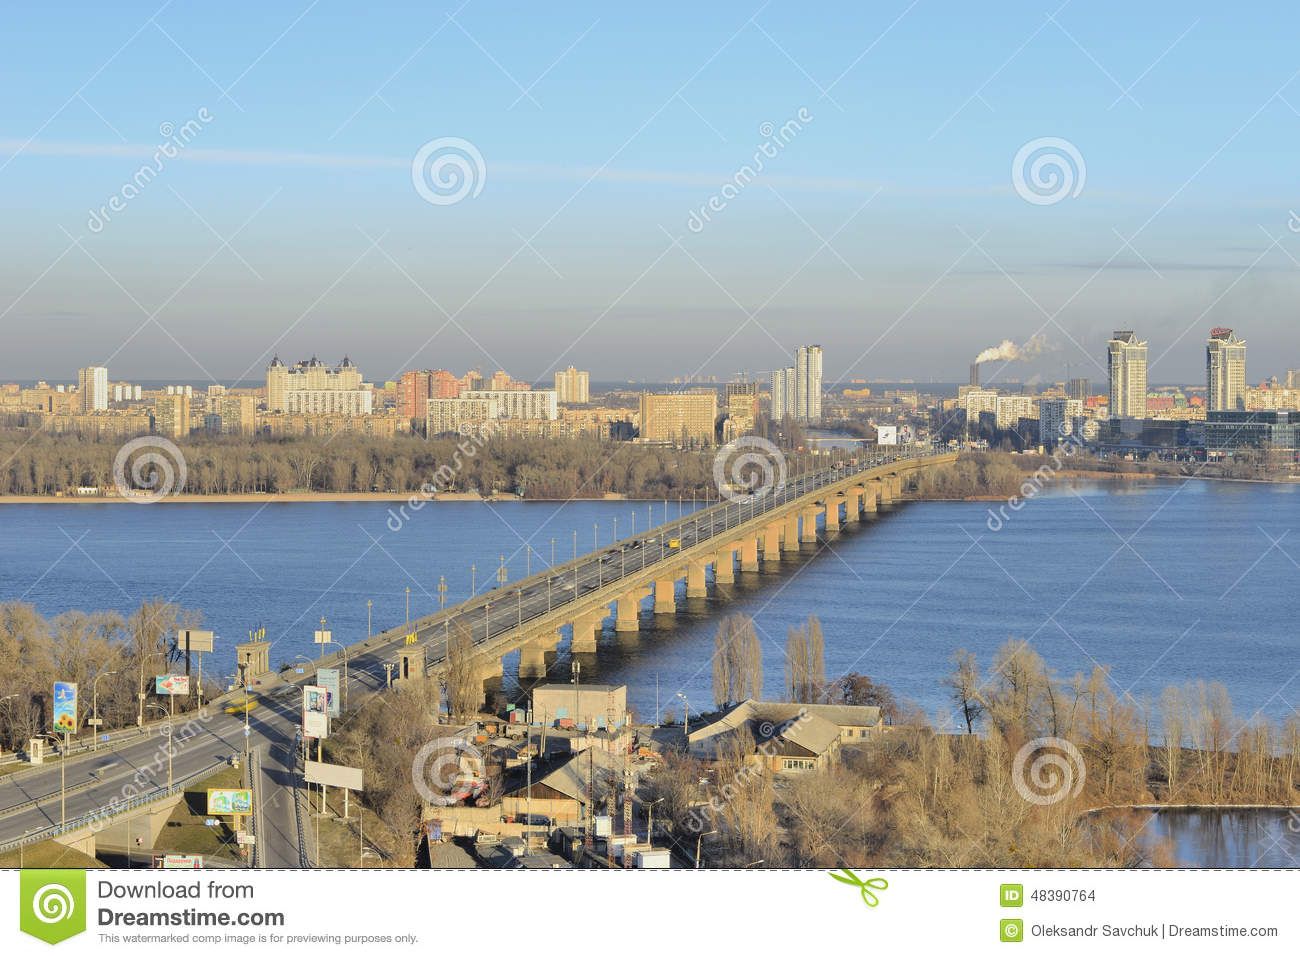 View of the river Dnieper